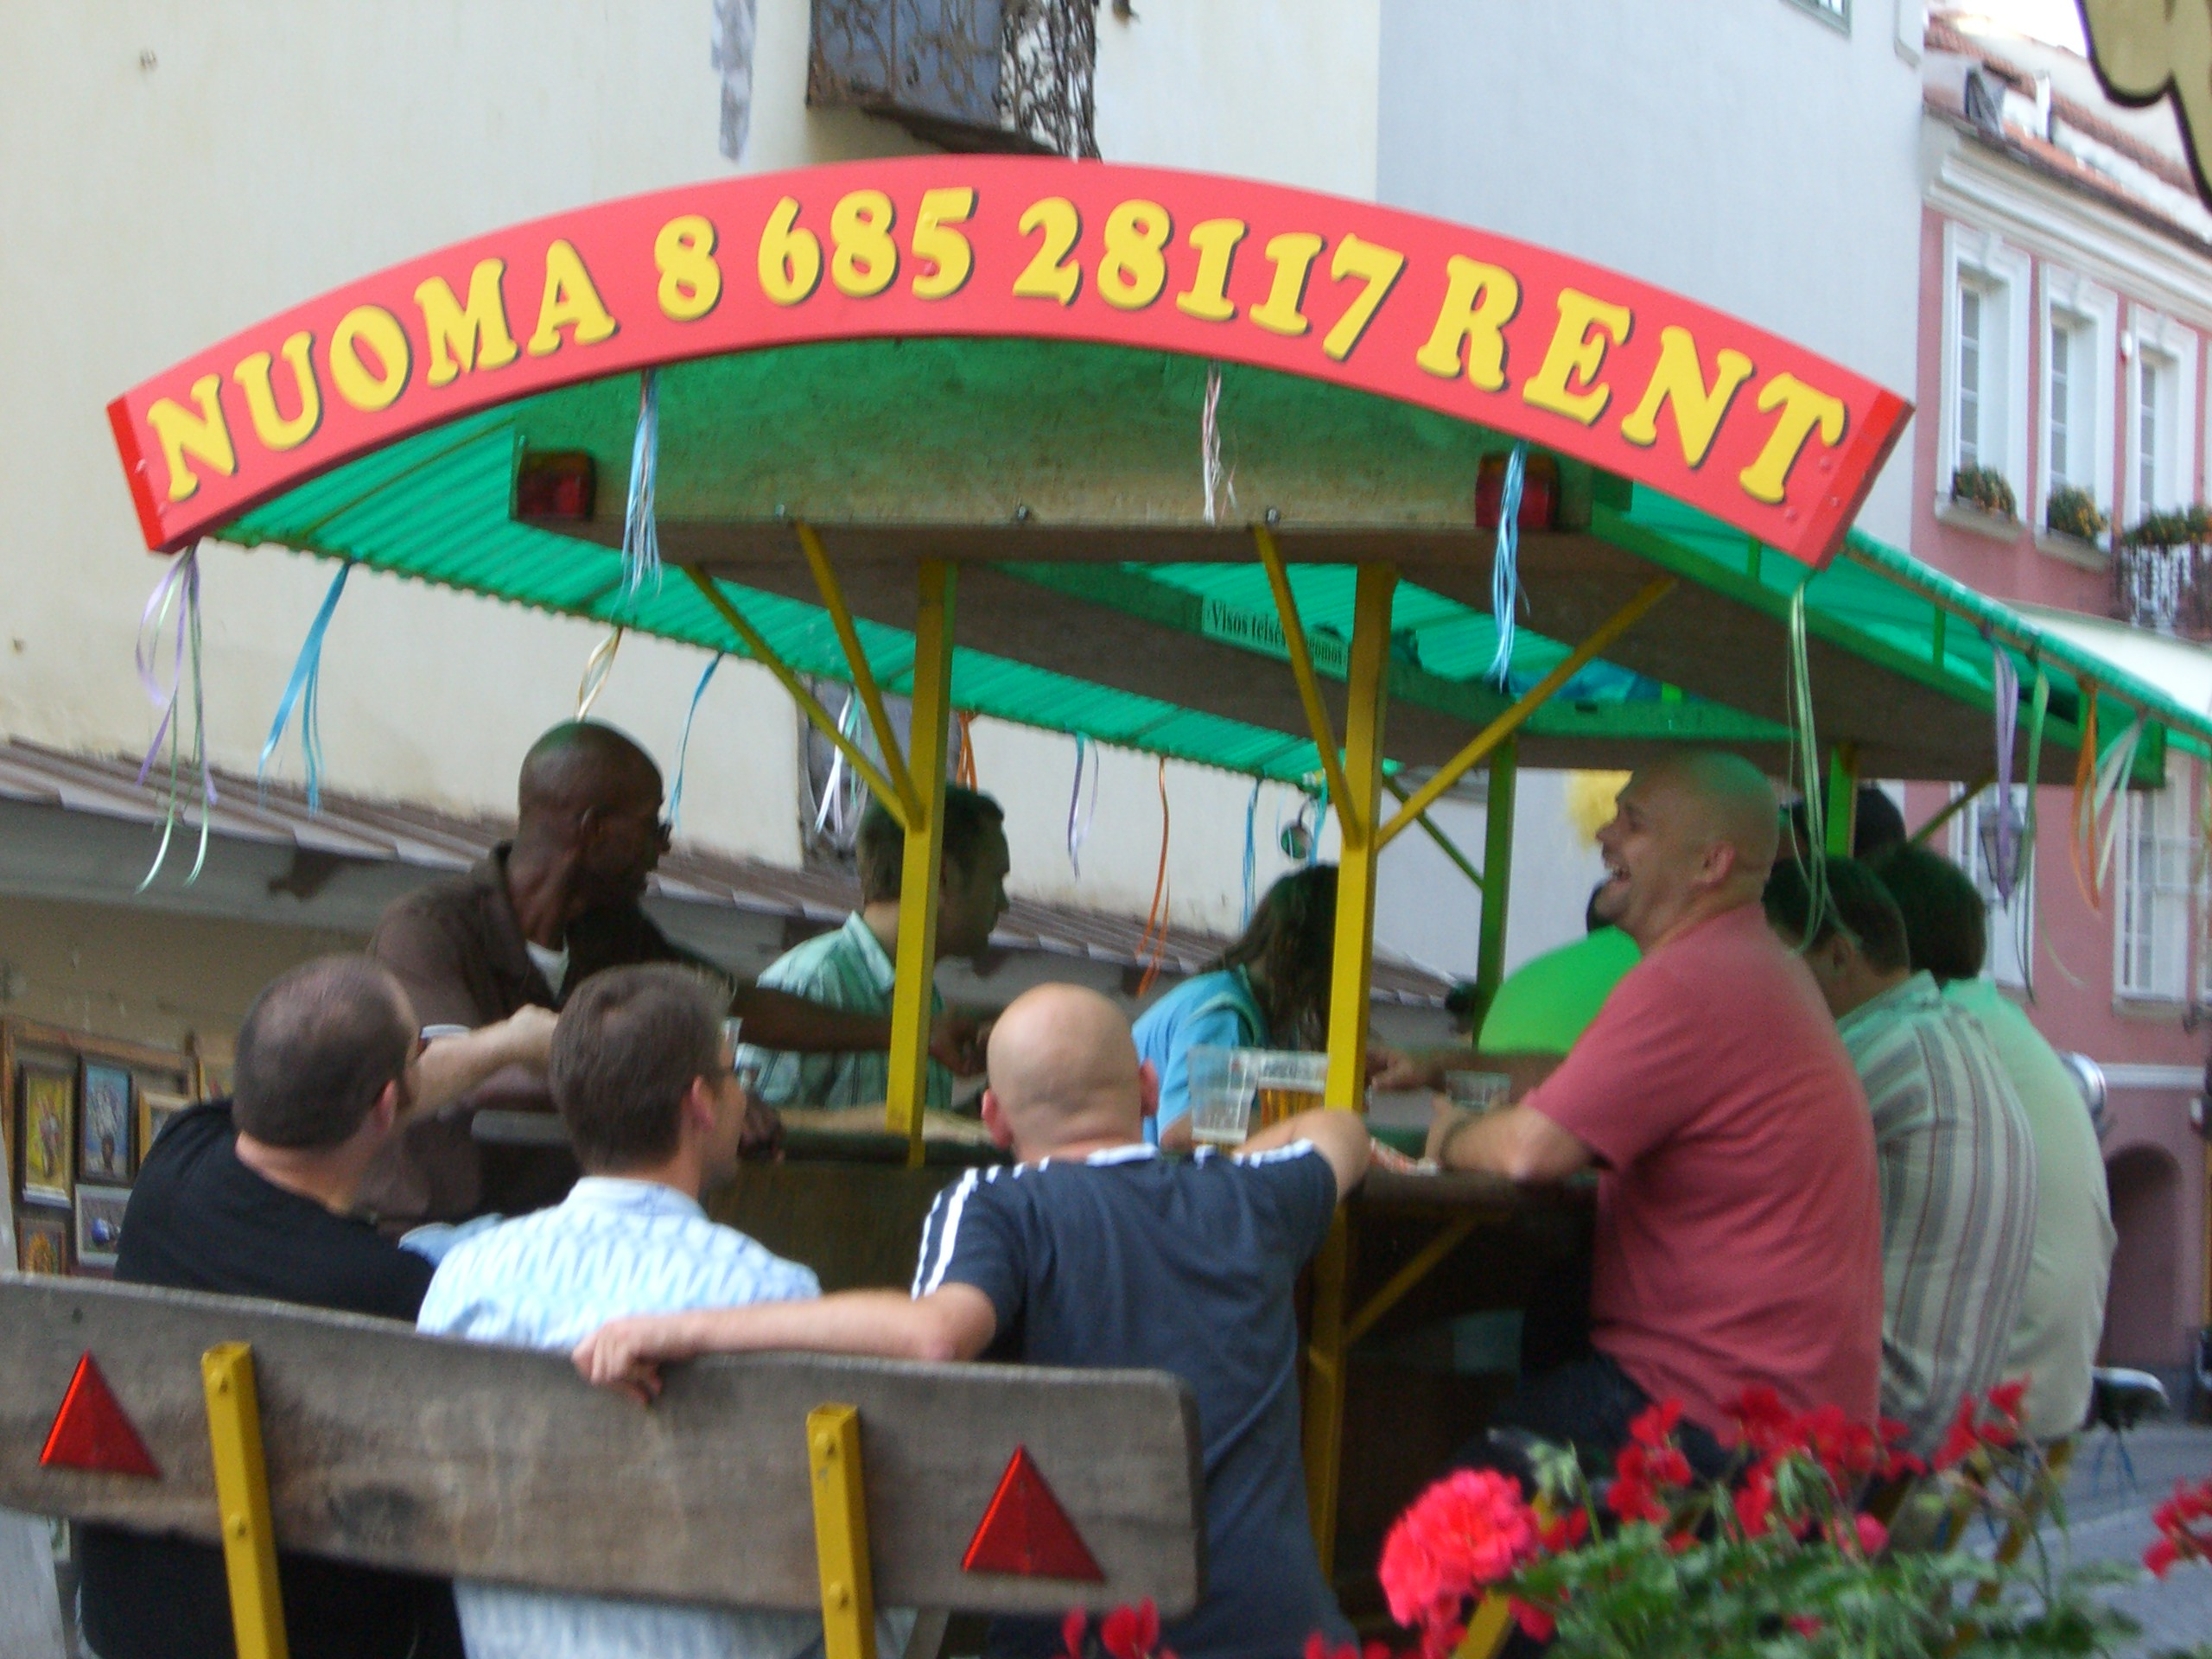 A bar on wheels drives down the street in Vilnius Old Town in September 2005